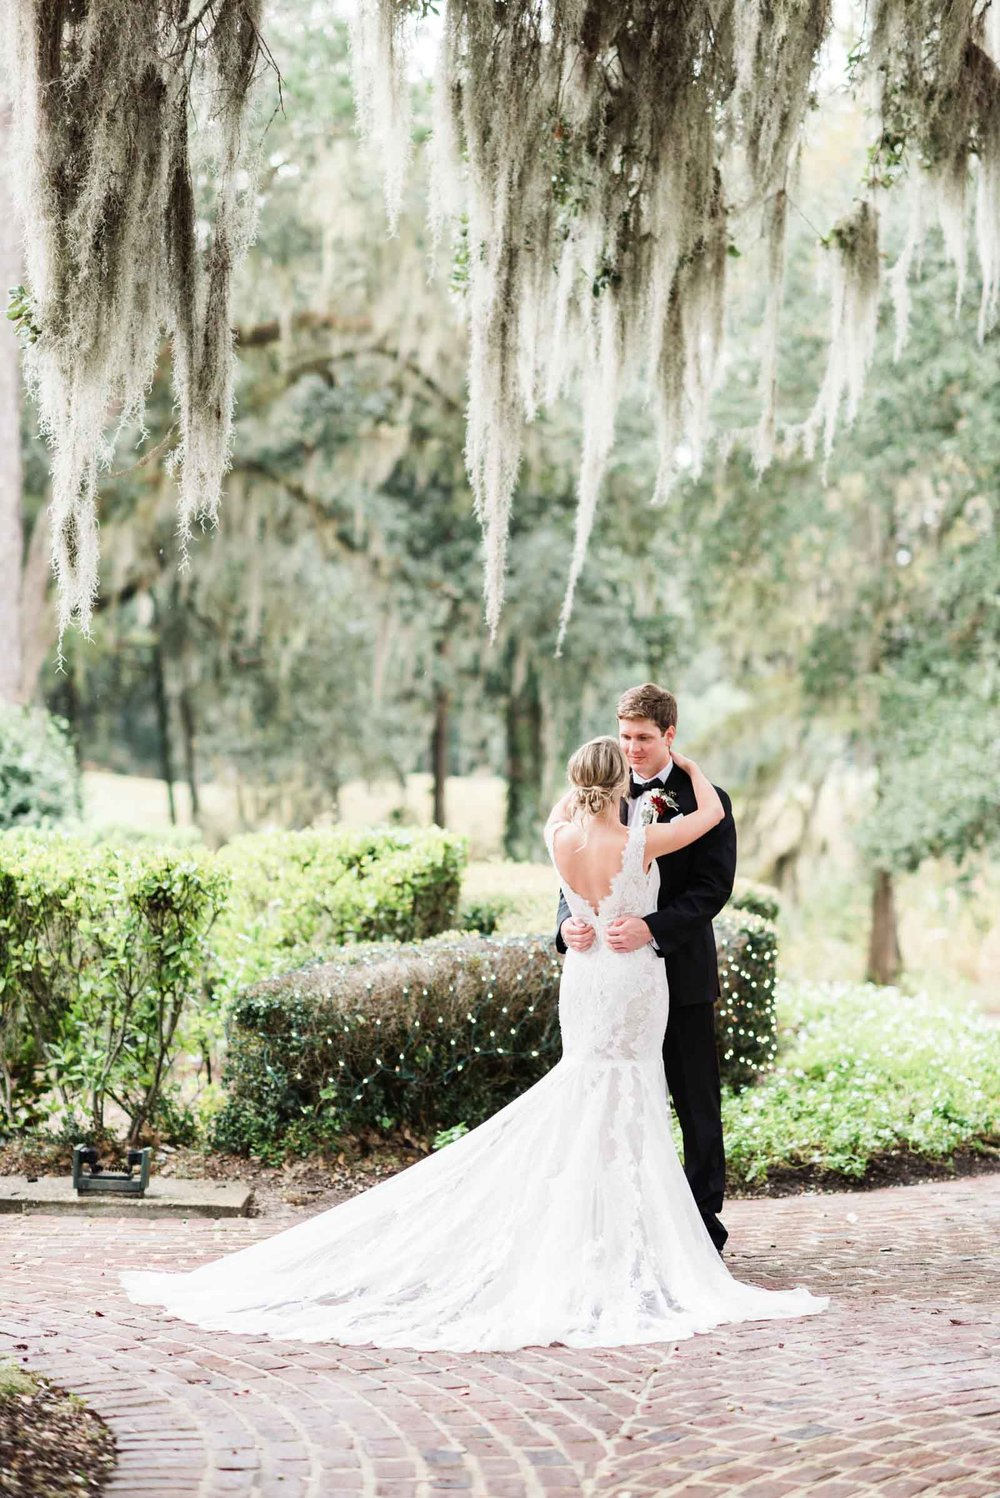 Wedding at Heritage Plantation in Pawley's Island_Markie Walden Photo-33.jpg